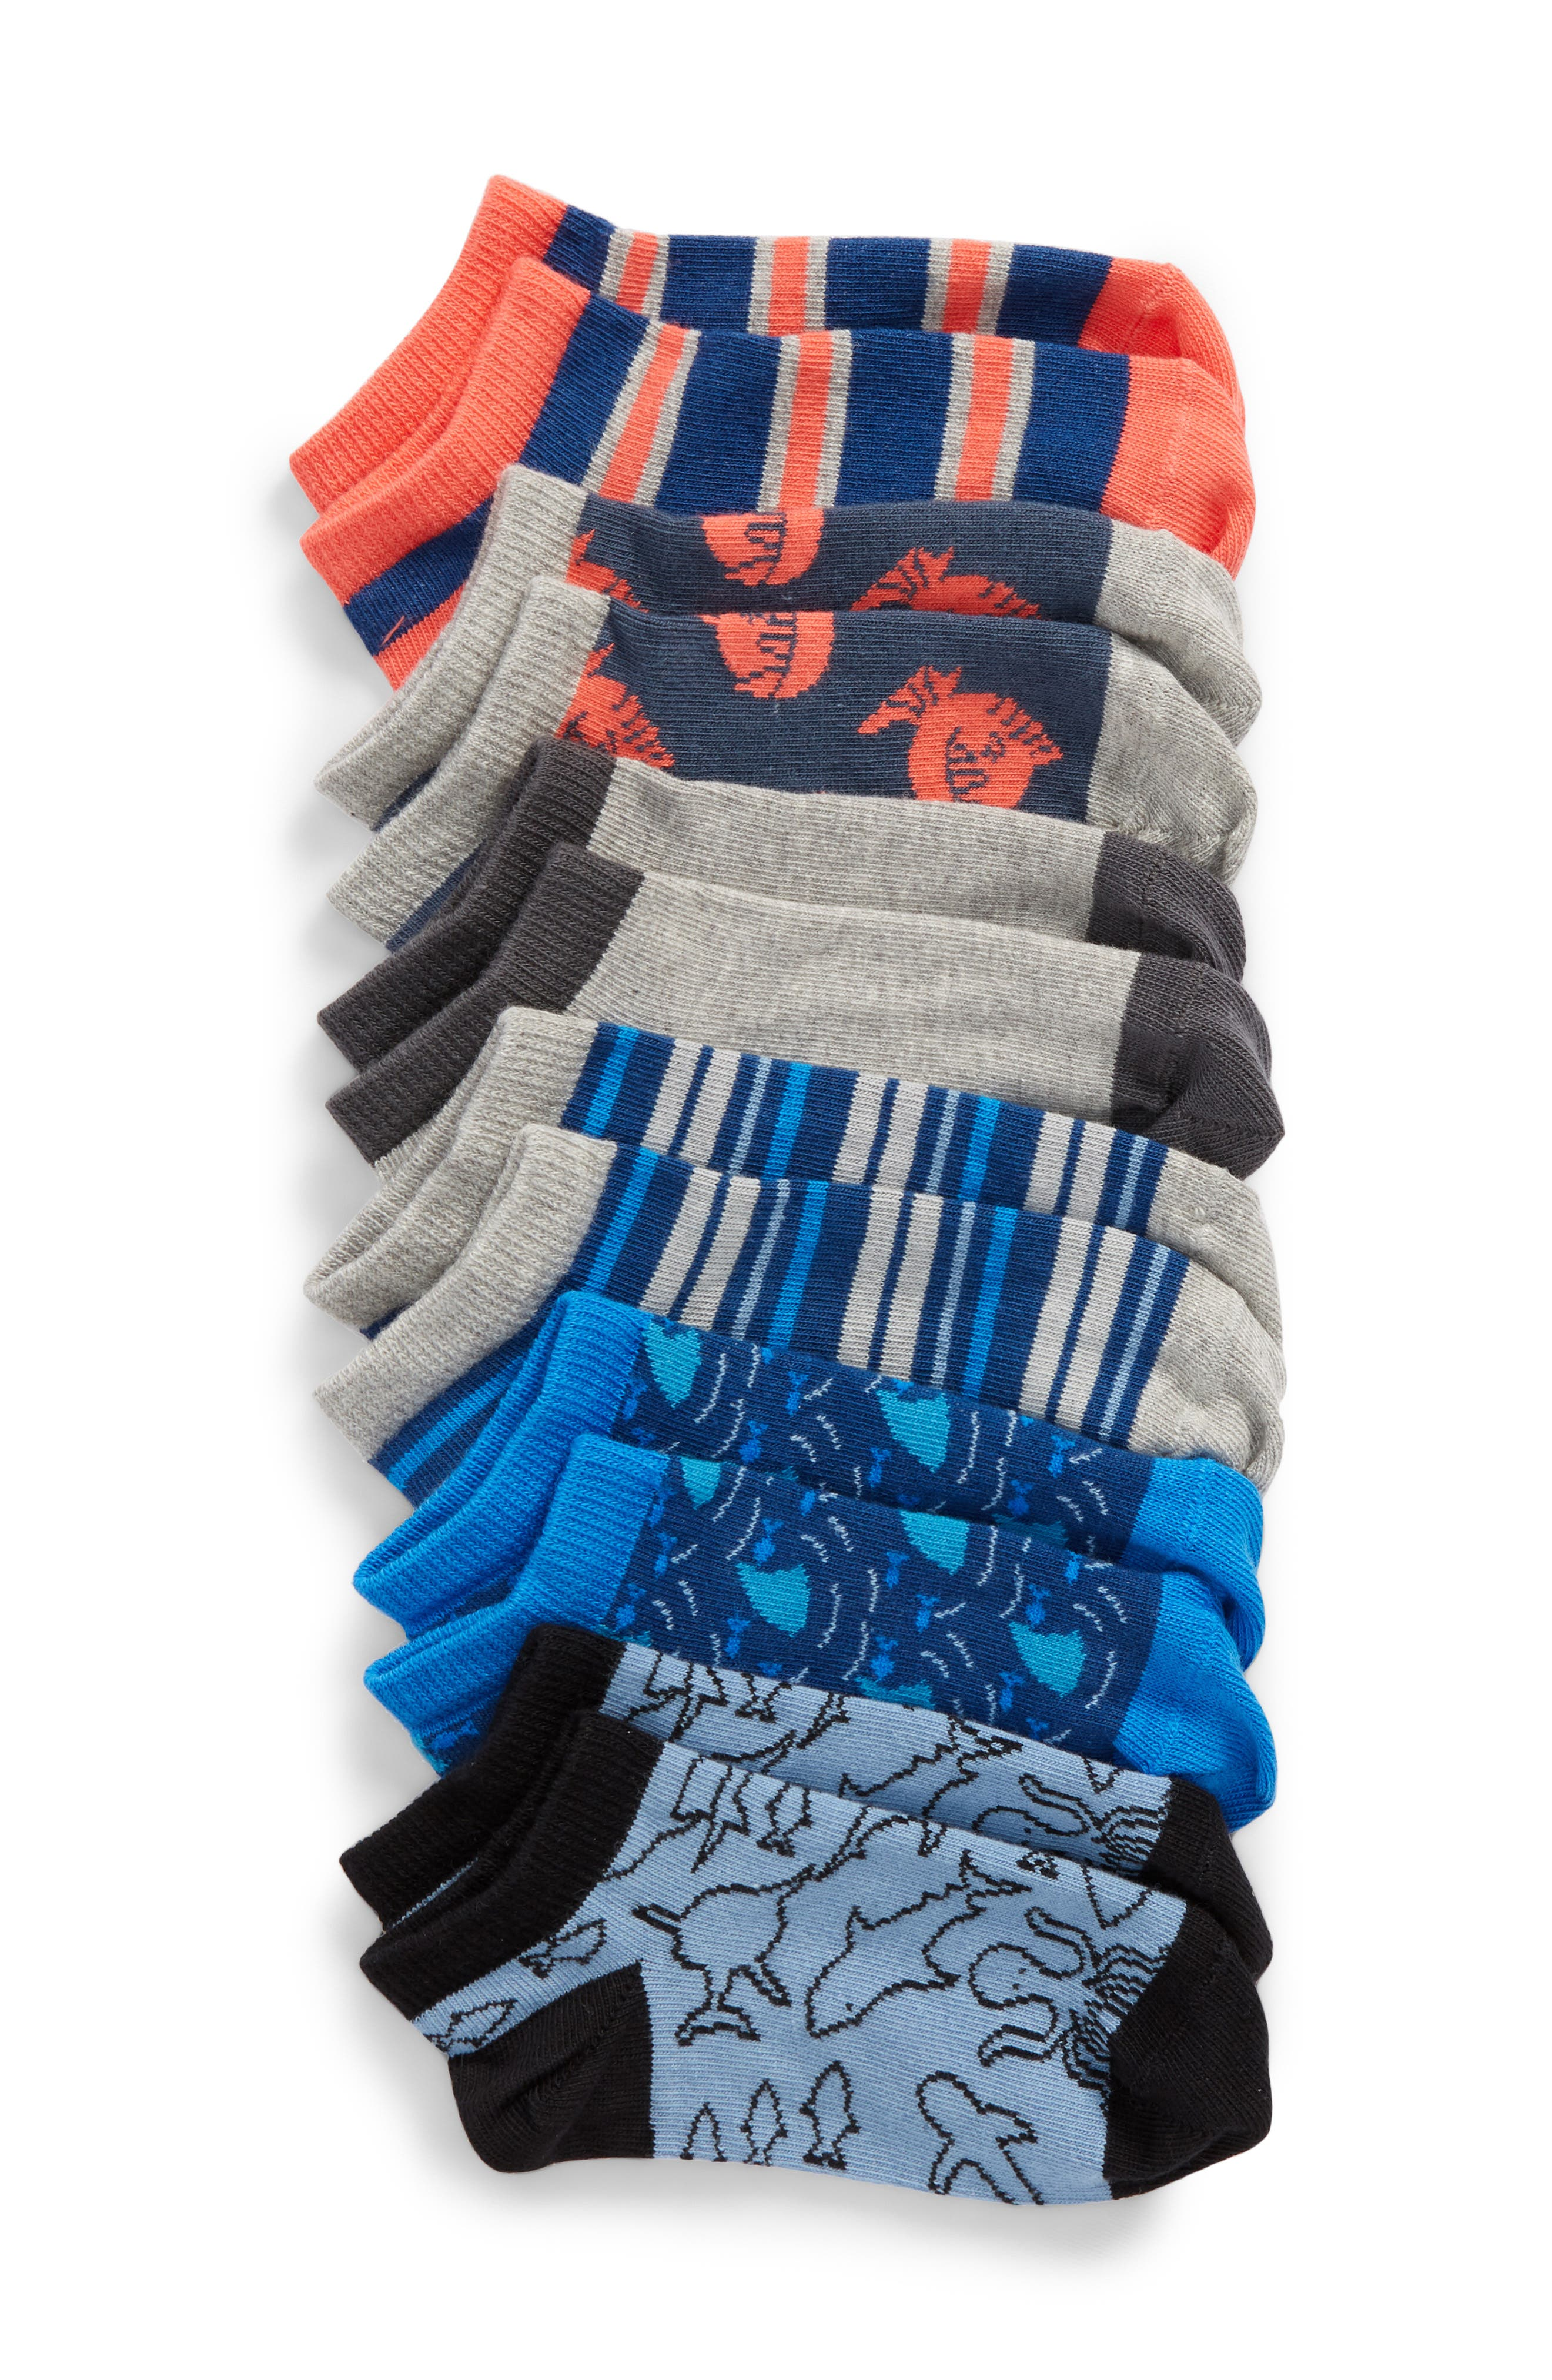 6-Pack Puffer Fish Low Cut Socks,                             Main thumbnail 1, color,                             Blue Cloud Multi